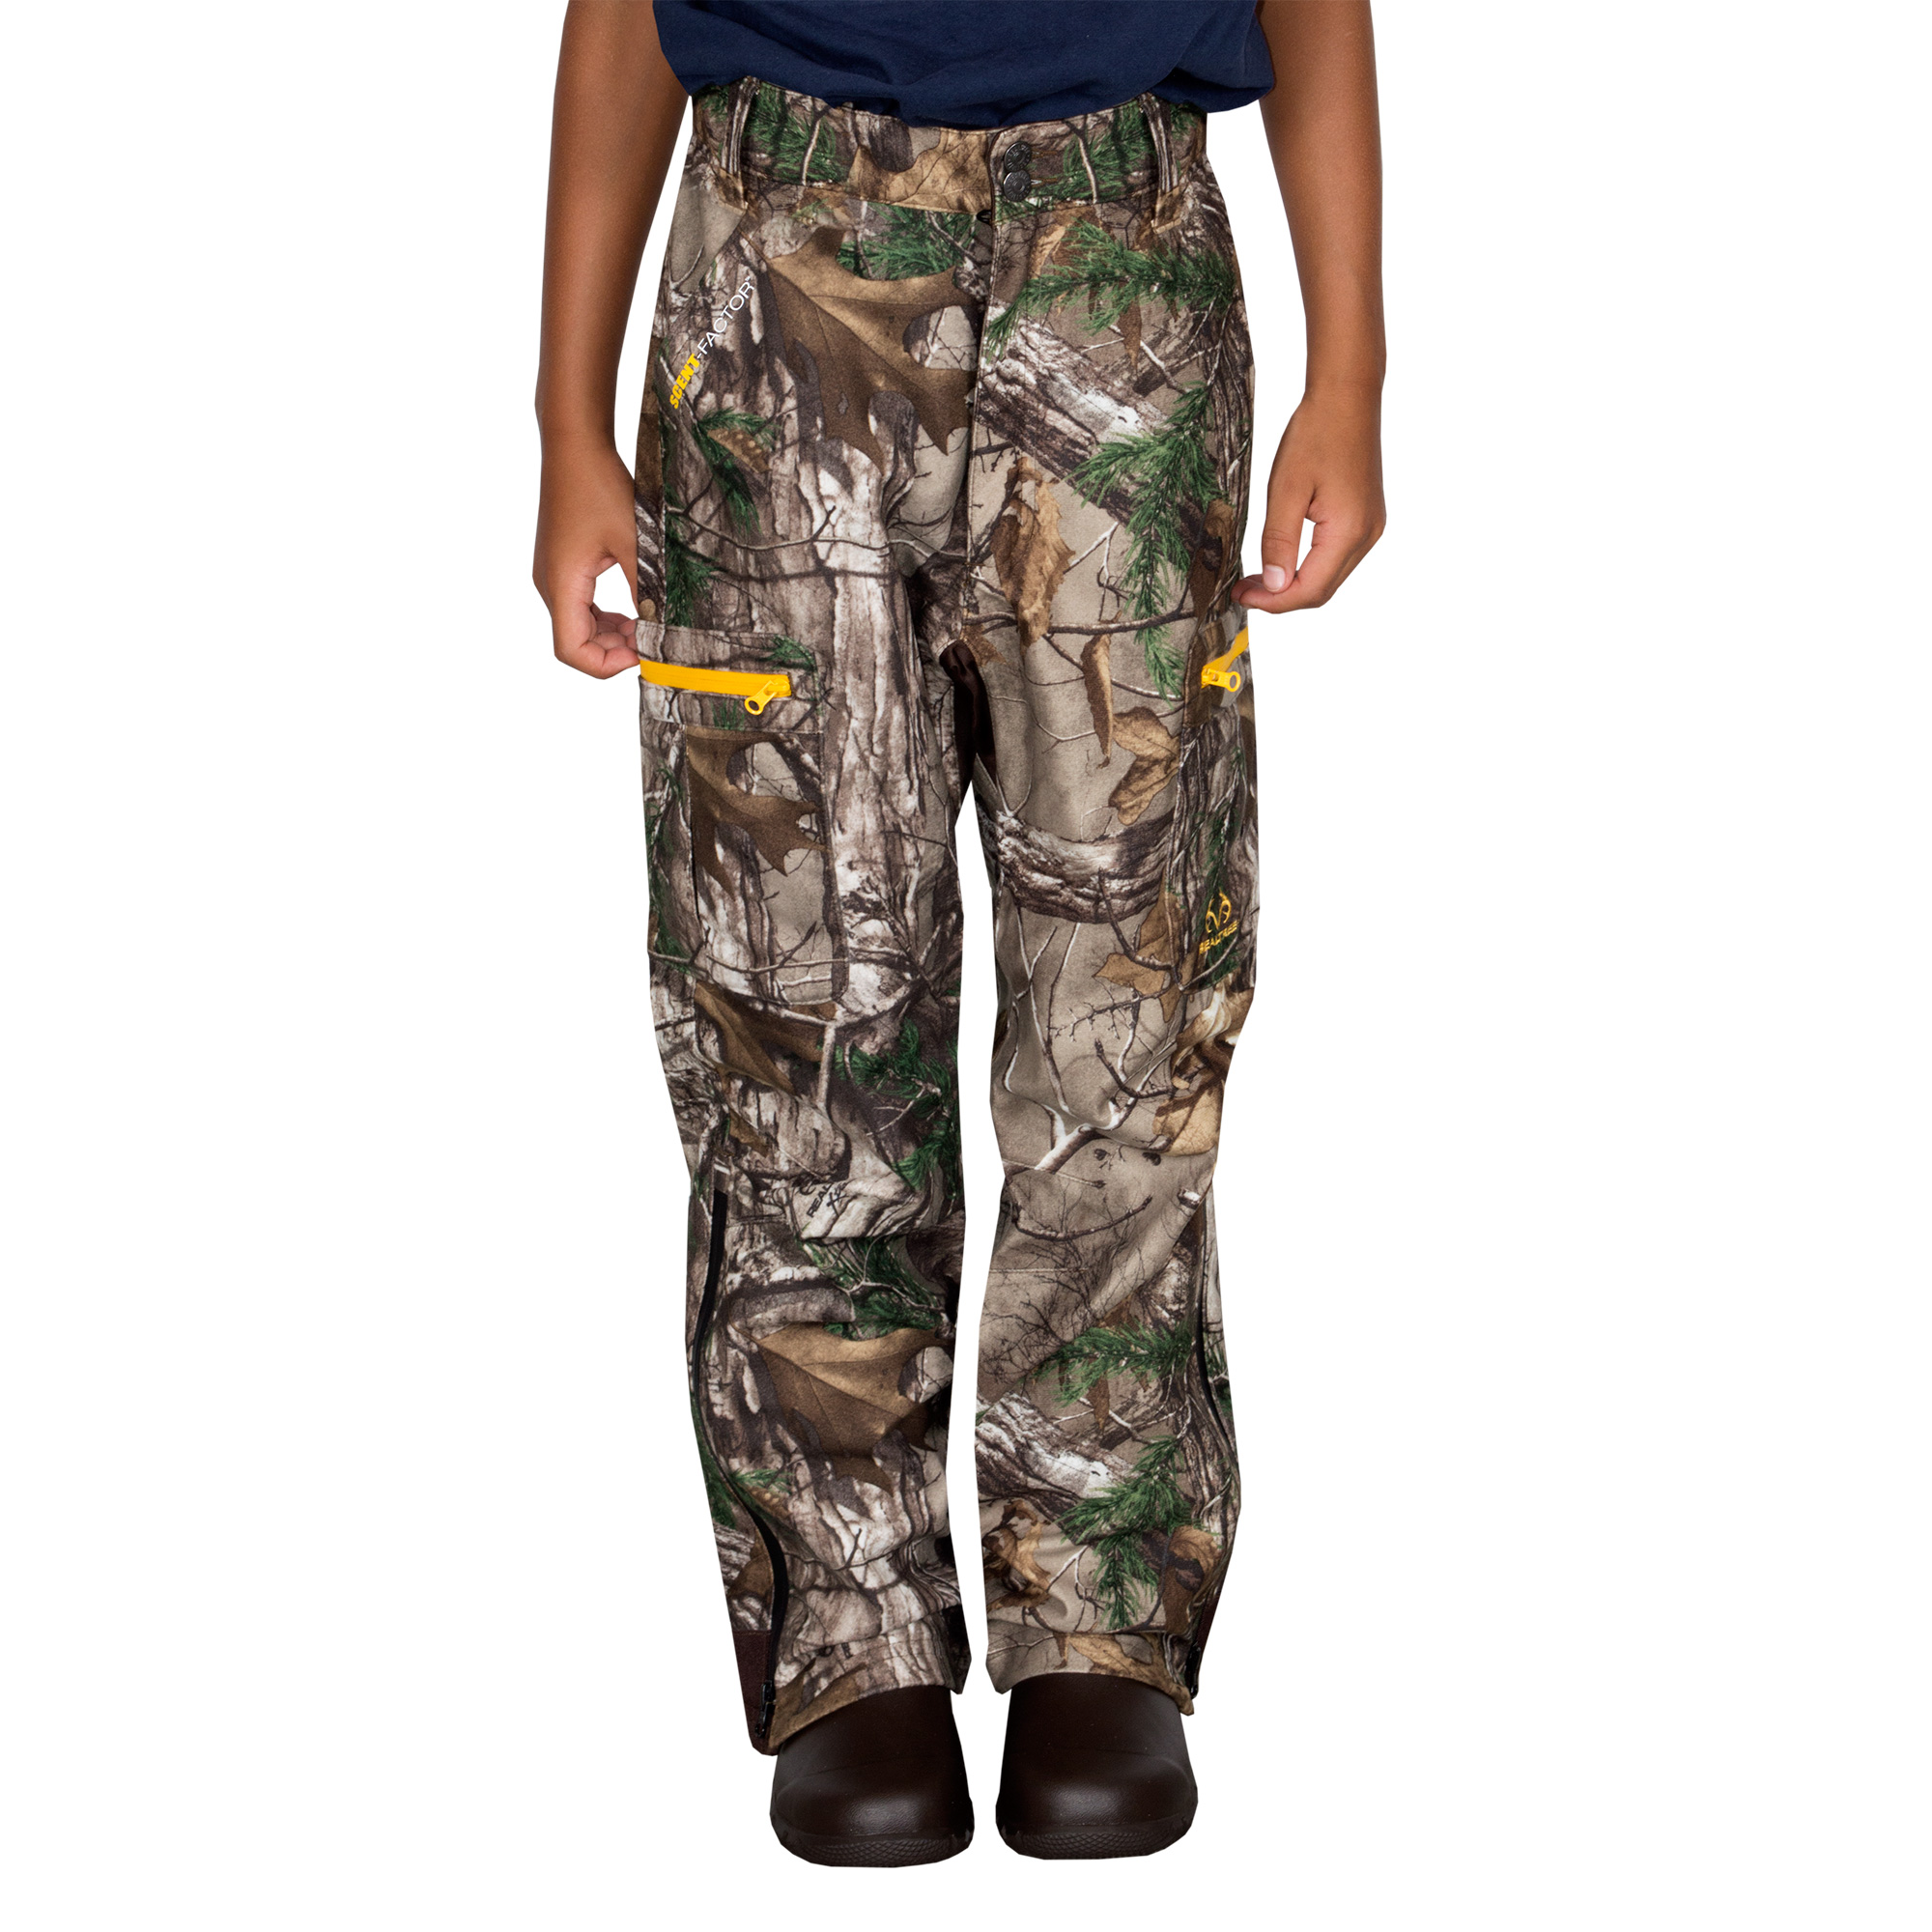 Youth Scent Control Pants Realtree Xtra by Mahco Inc